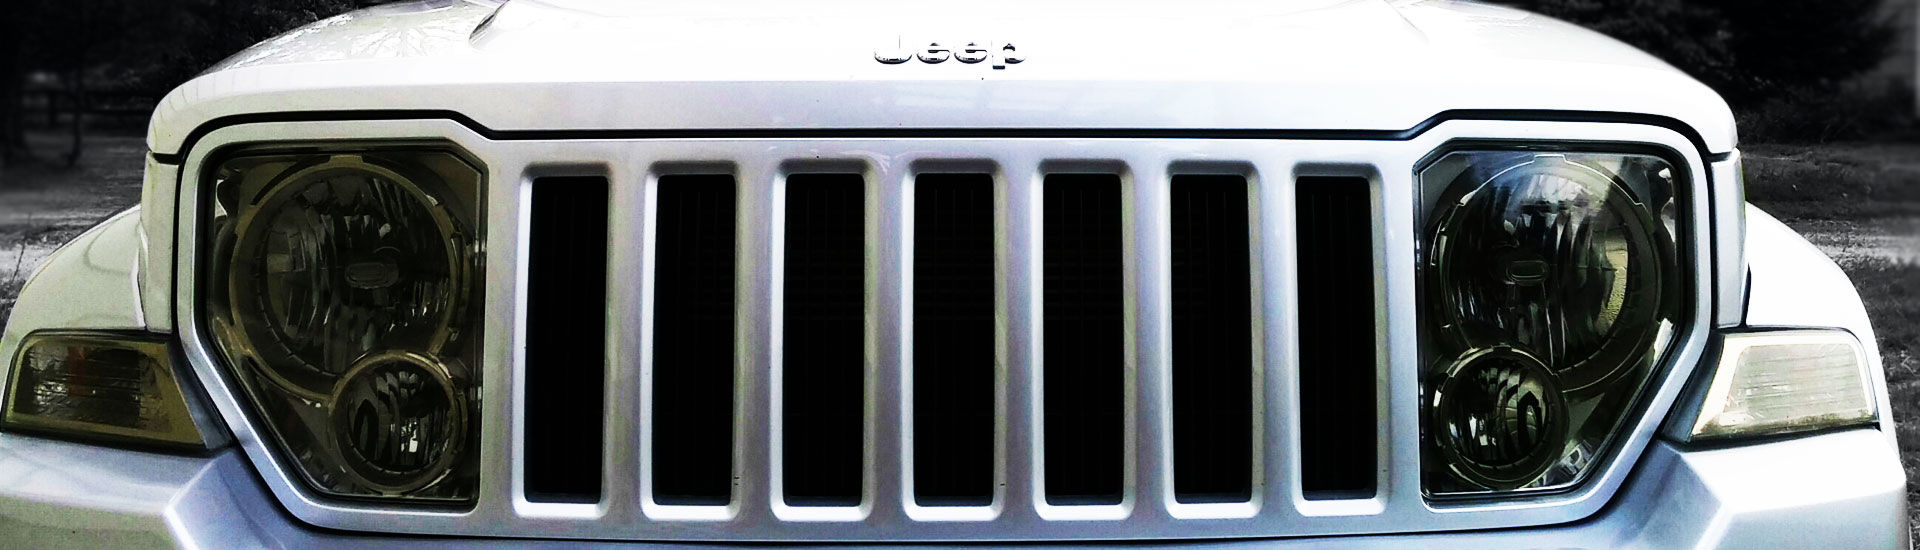 Jeep Liberty Headlight Tint Covers